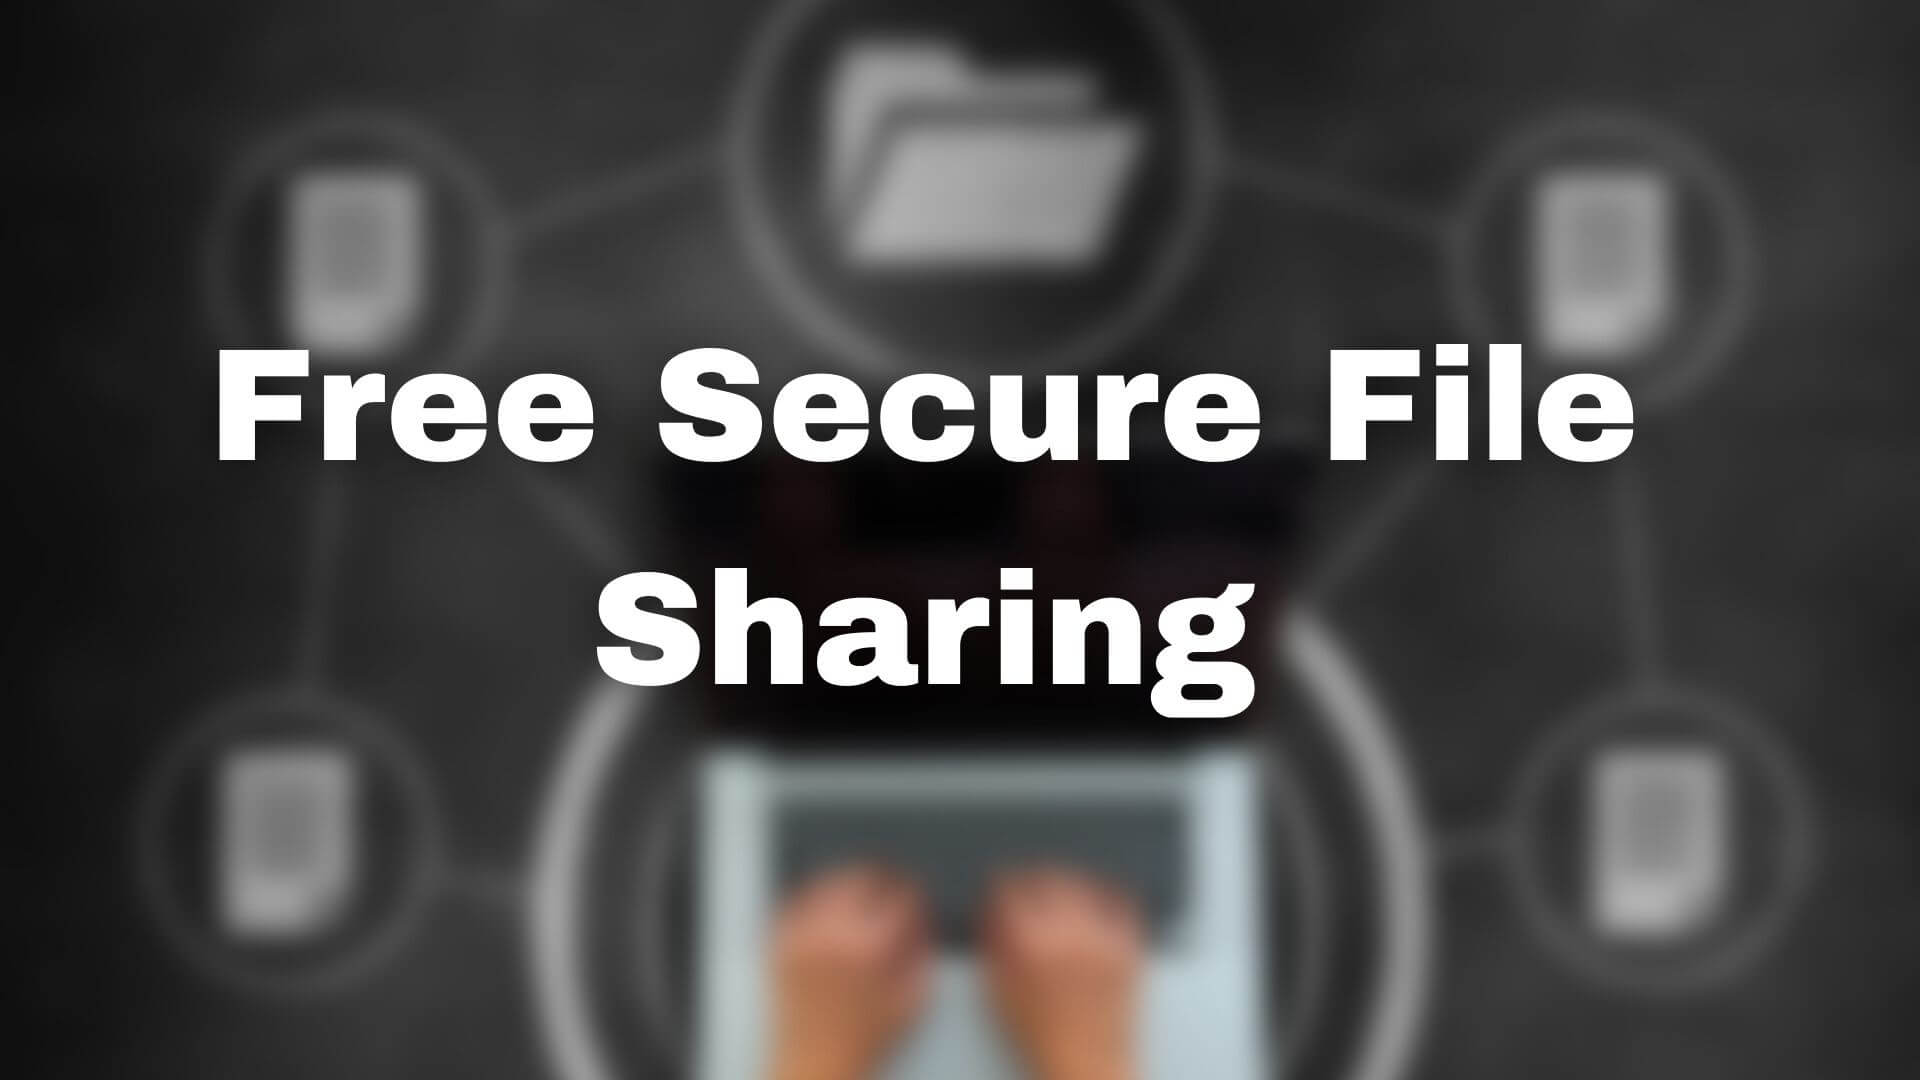 Free Secure File Sharing